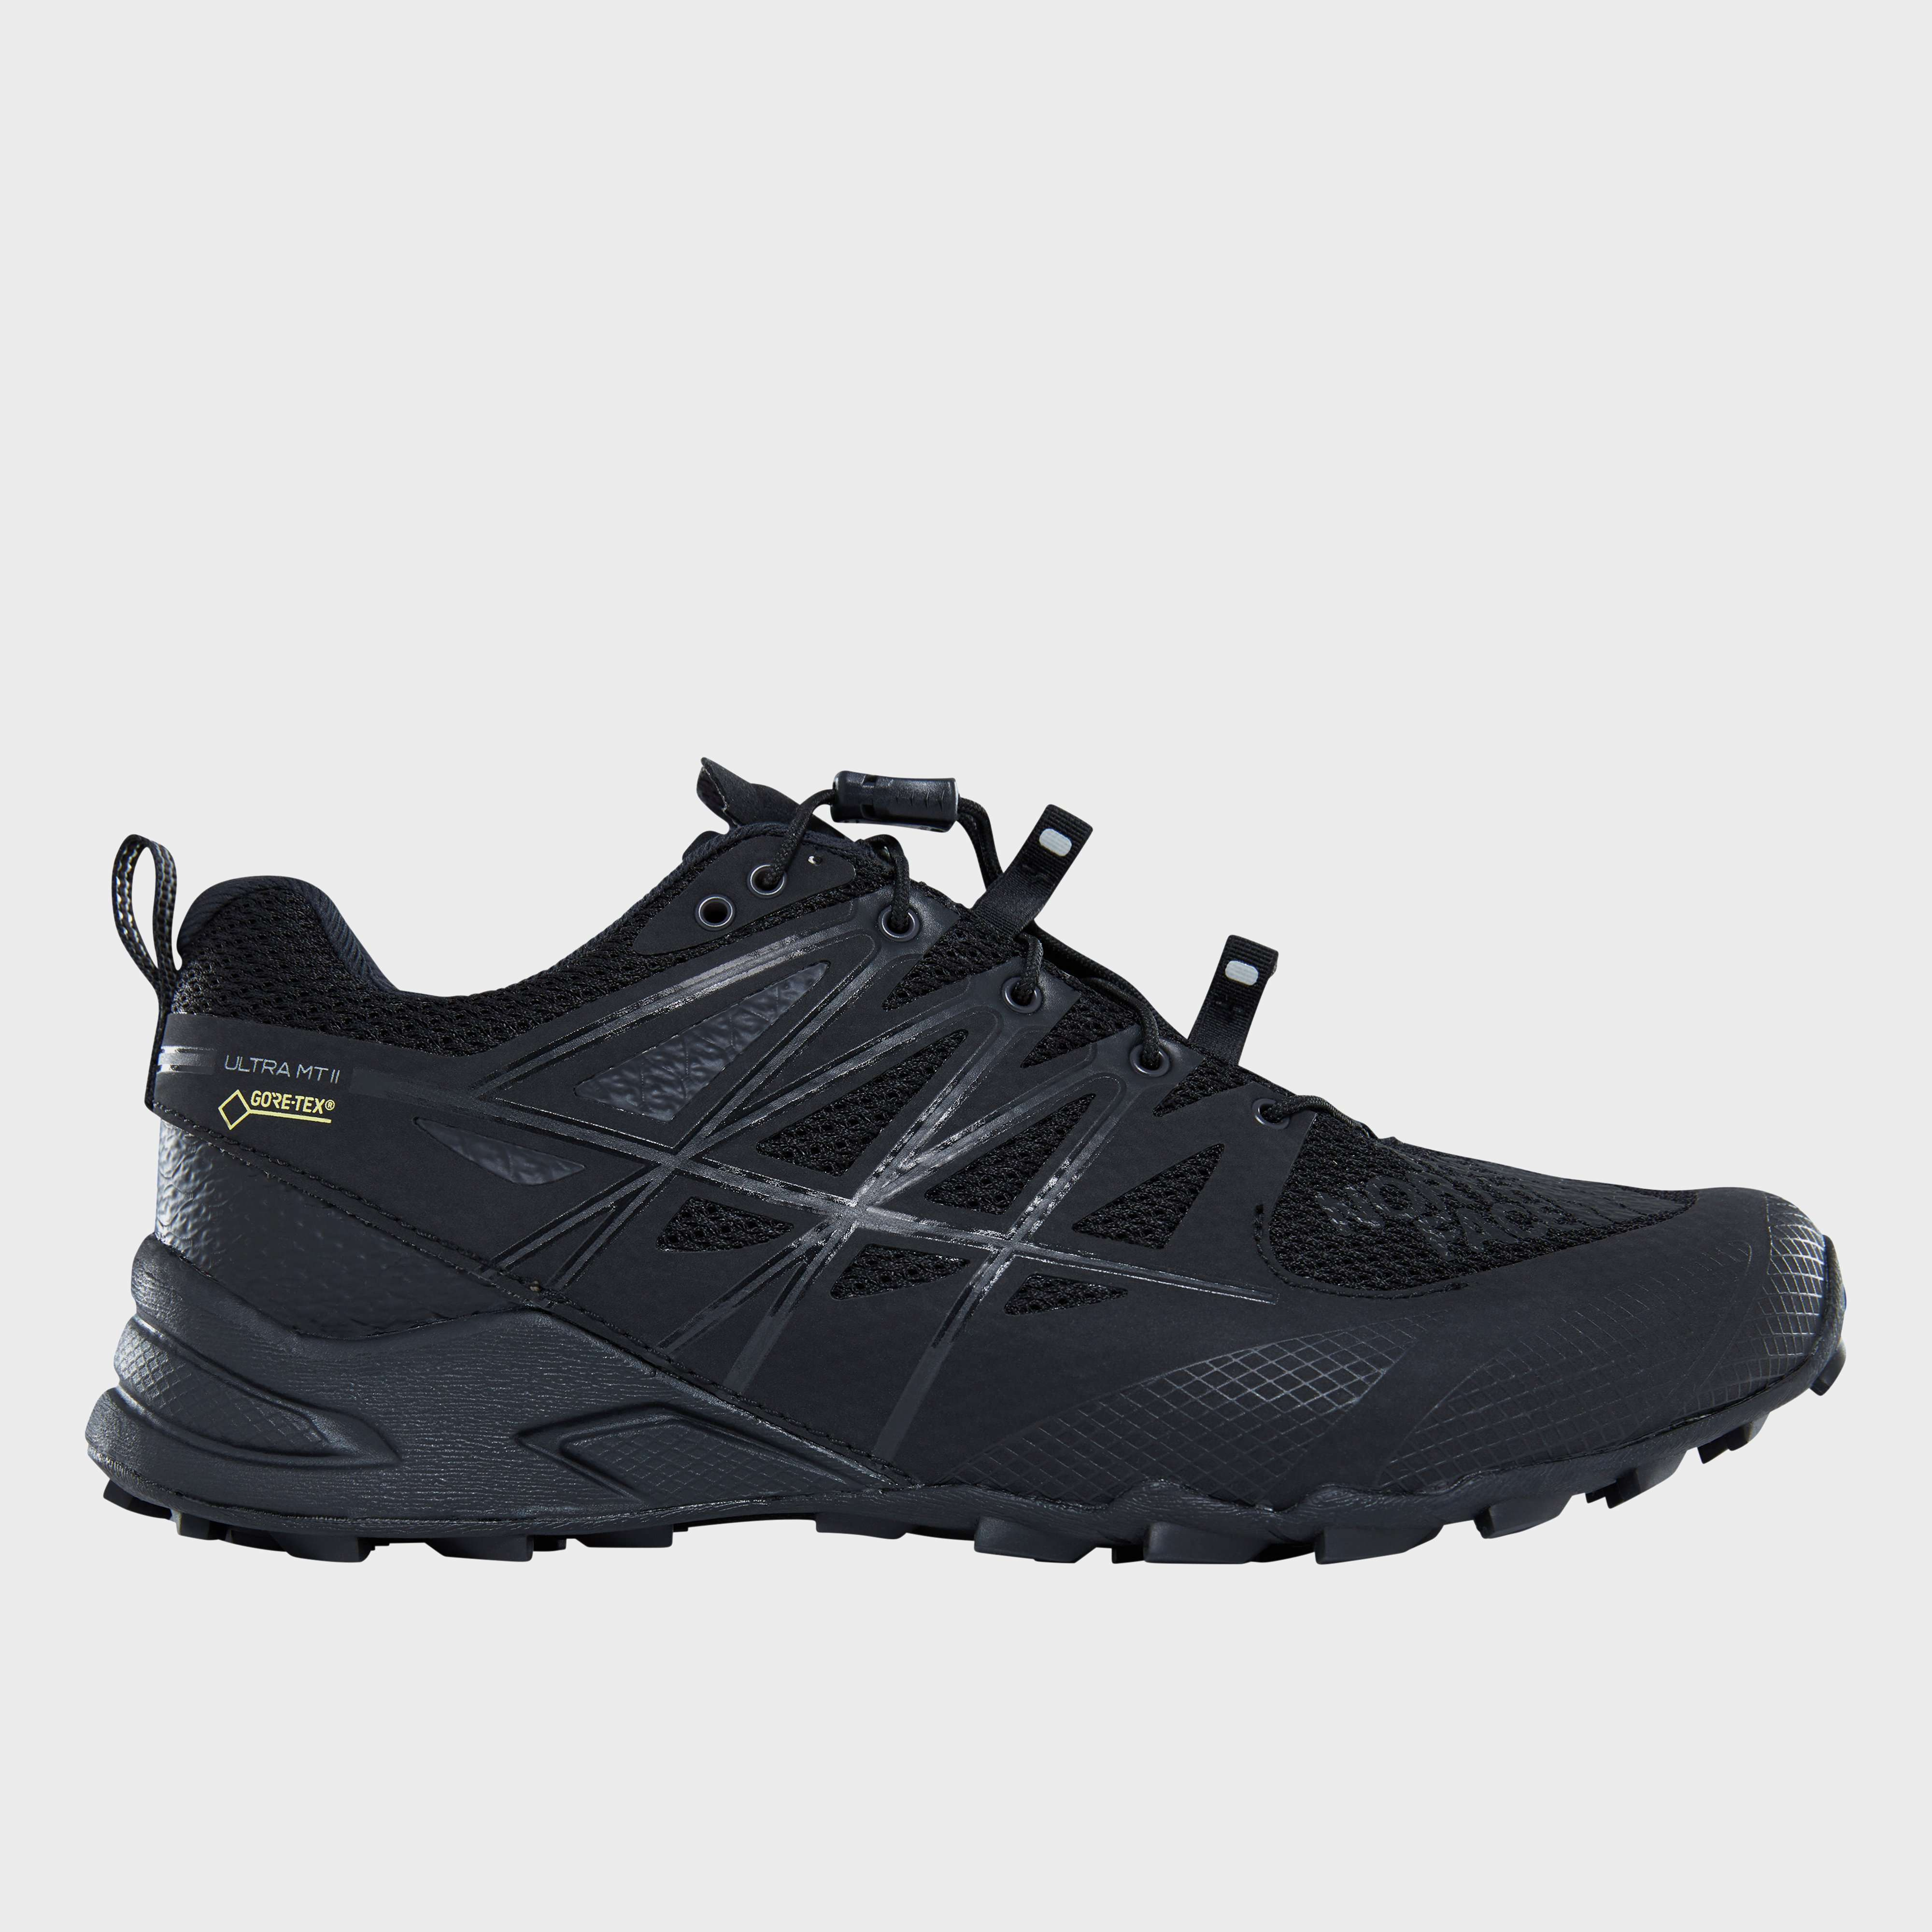 THE NORTH FACE Women's Ultra MT II GORE-TEX® Trail Runner